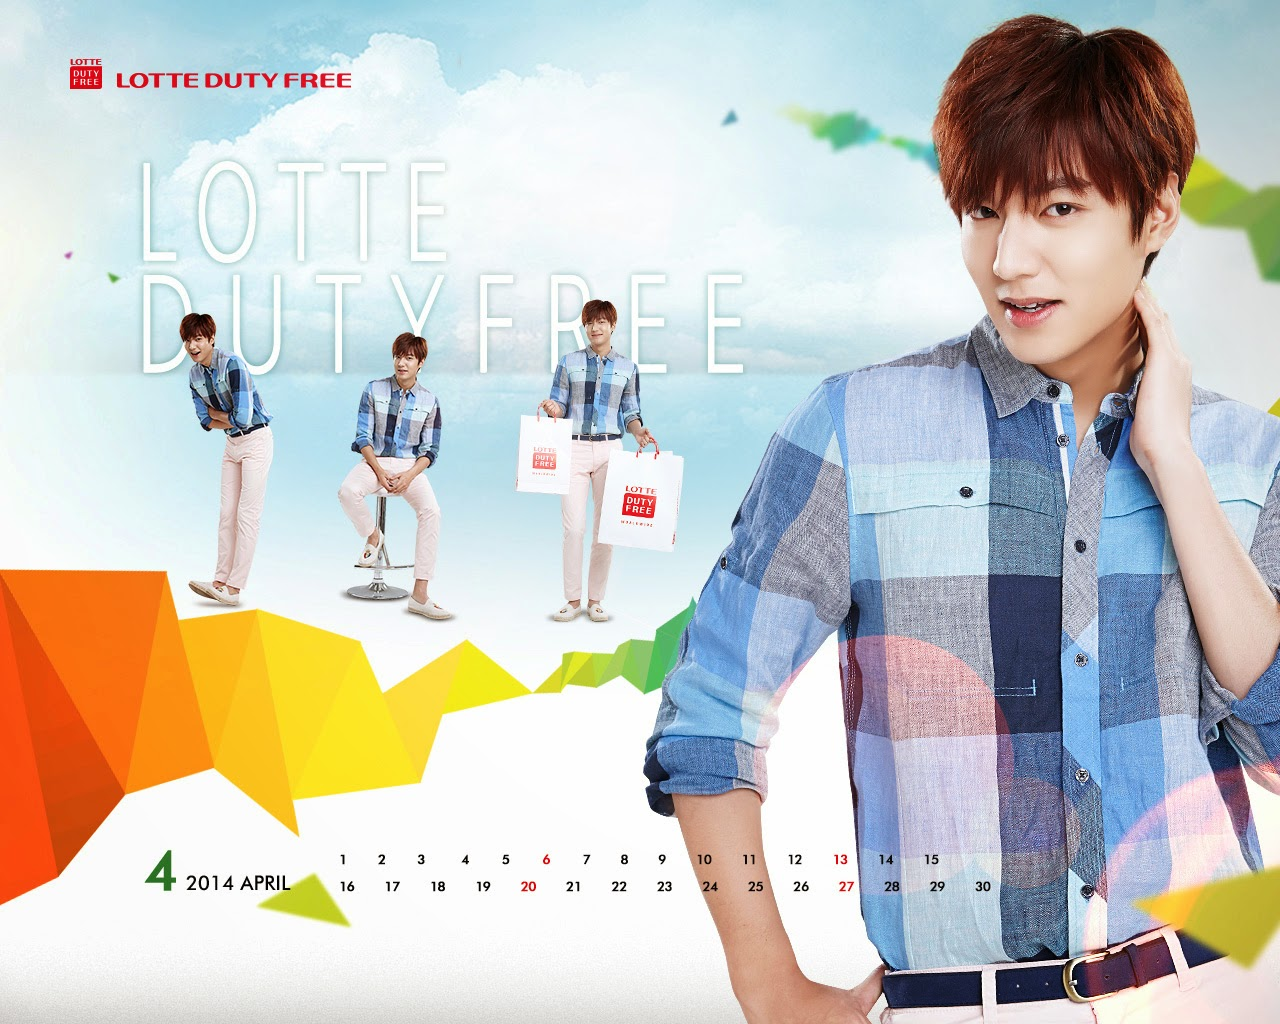 LEE MIN HO Y PARK SHIN HYE EN NUEVOS WALLPAPERS Y CALENDARIOS - ABRIL